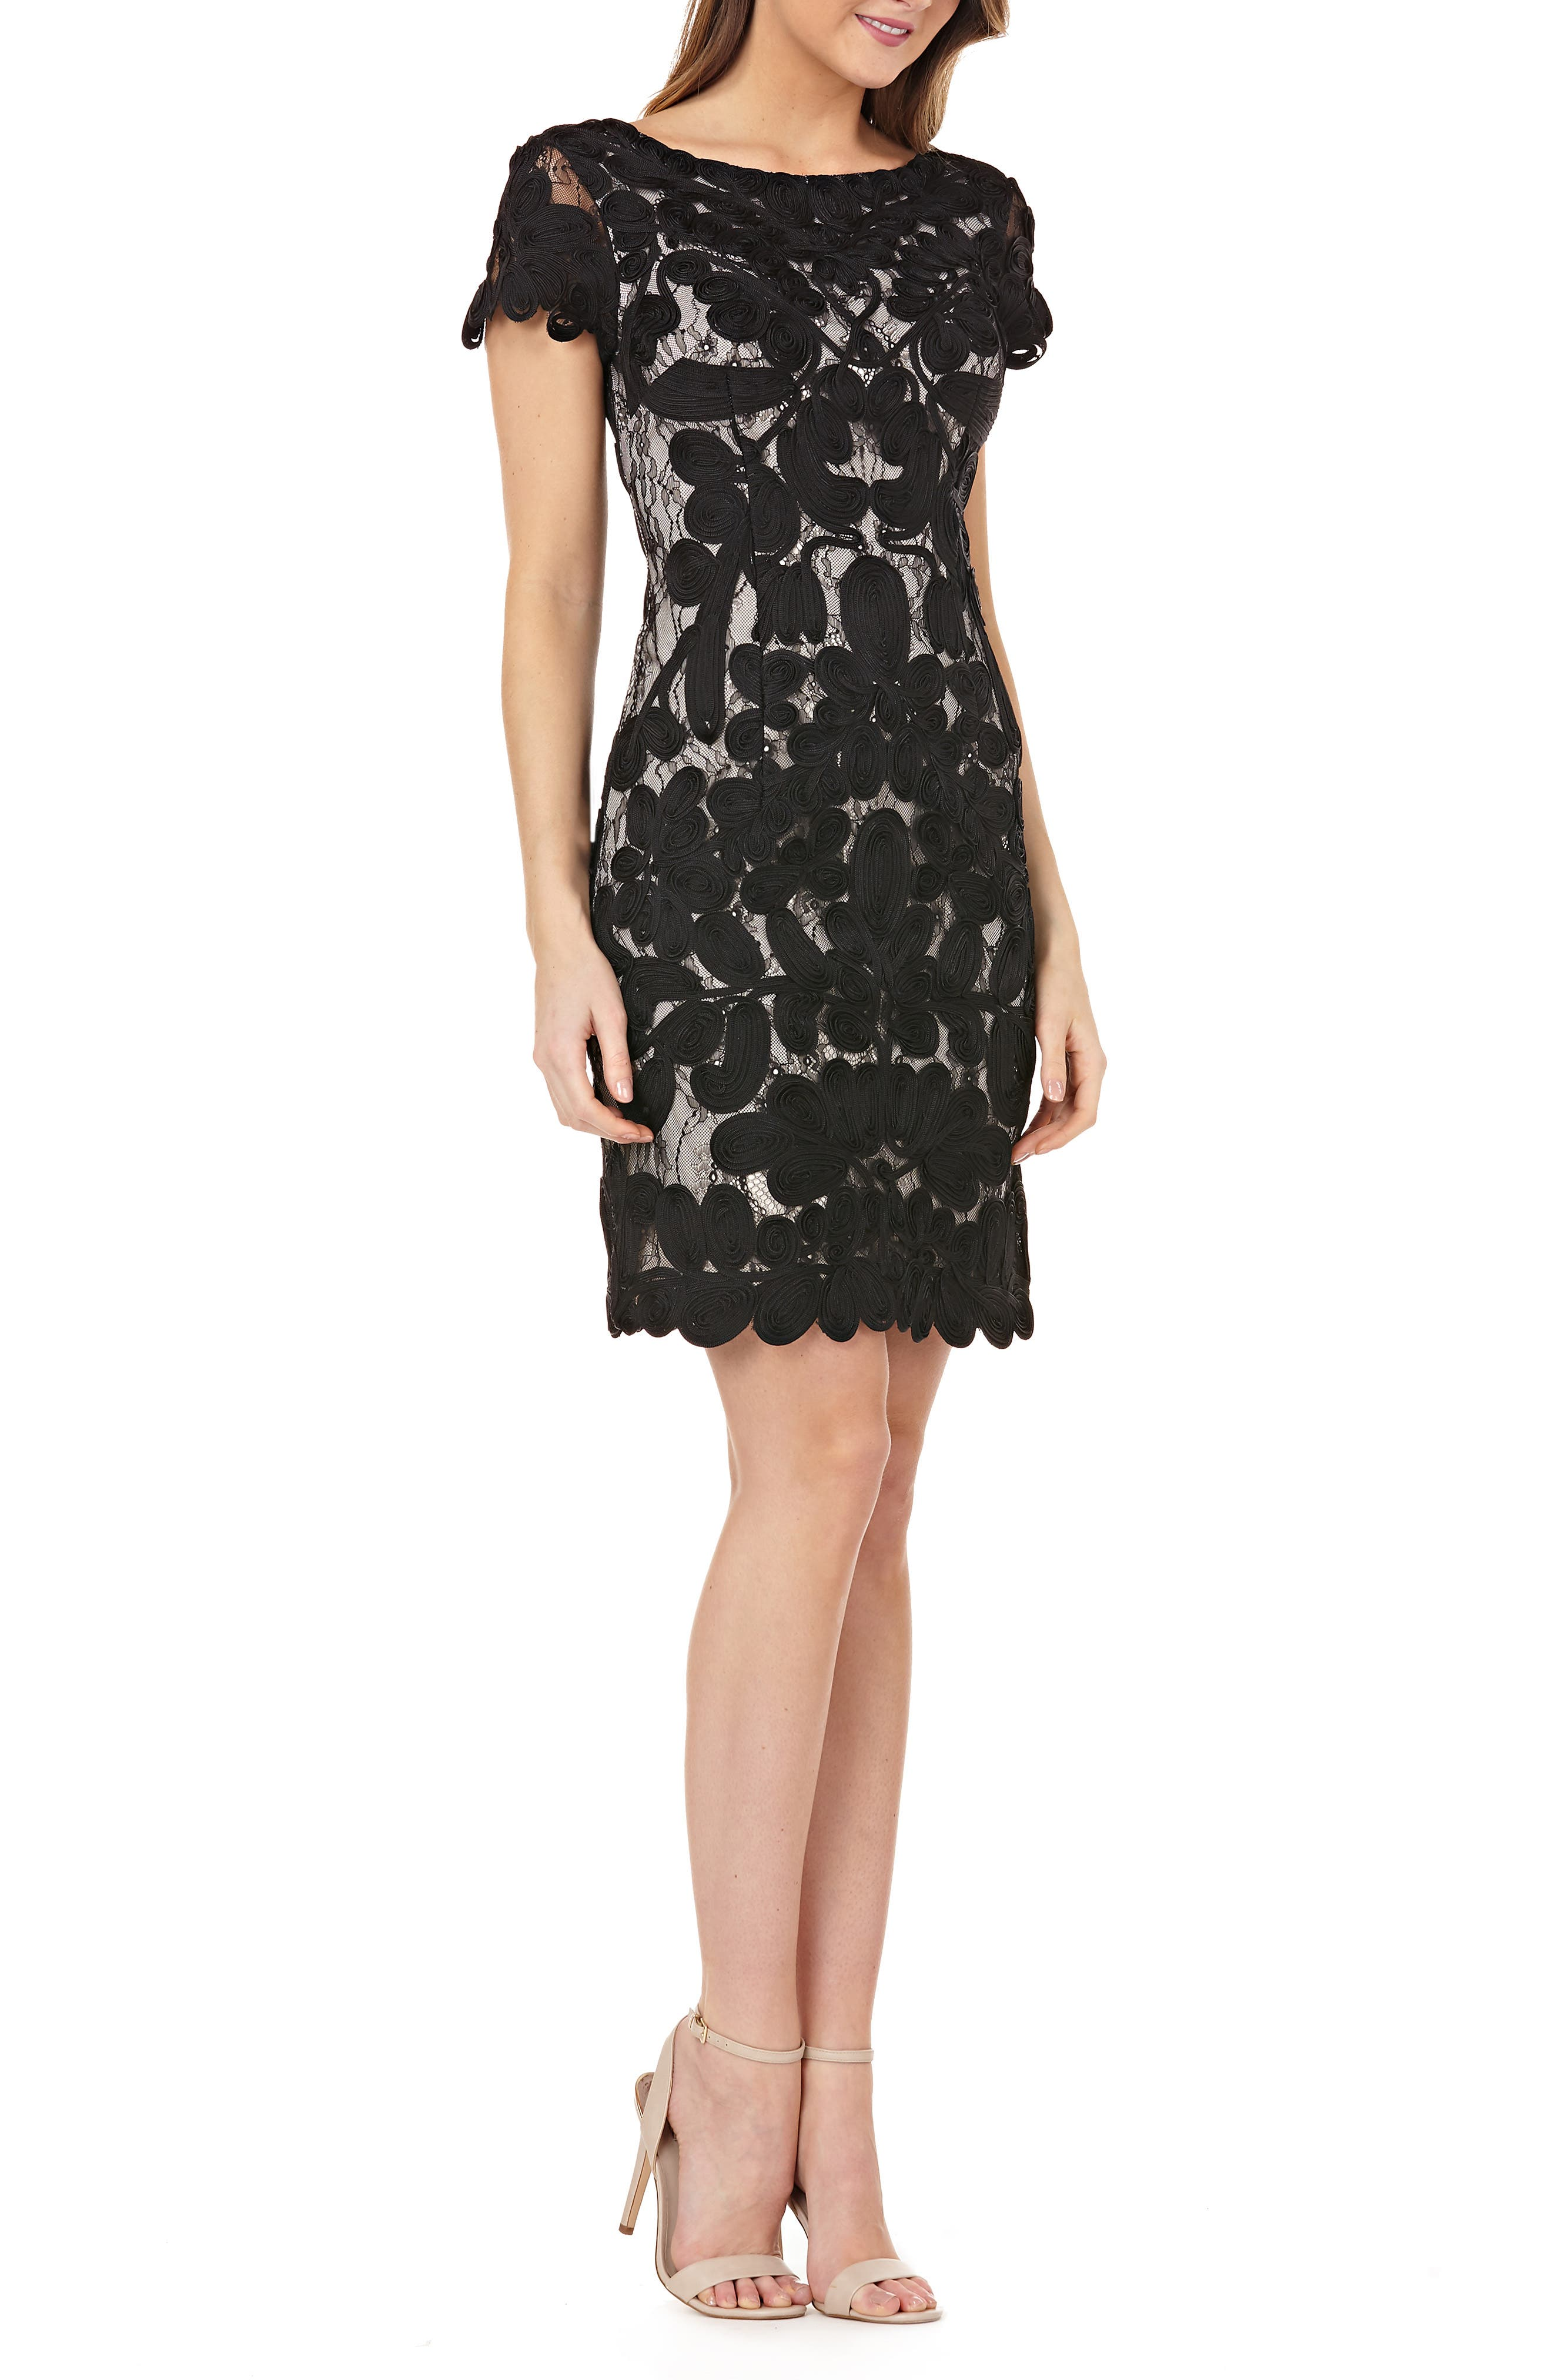 Js Collections Two-Tone Lace Embroidery Cocktail Dress, Black